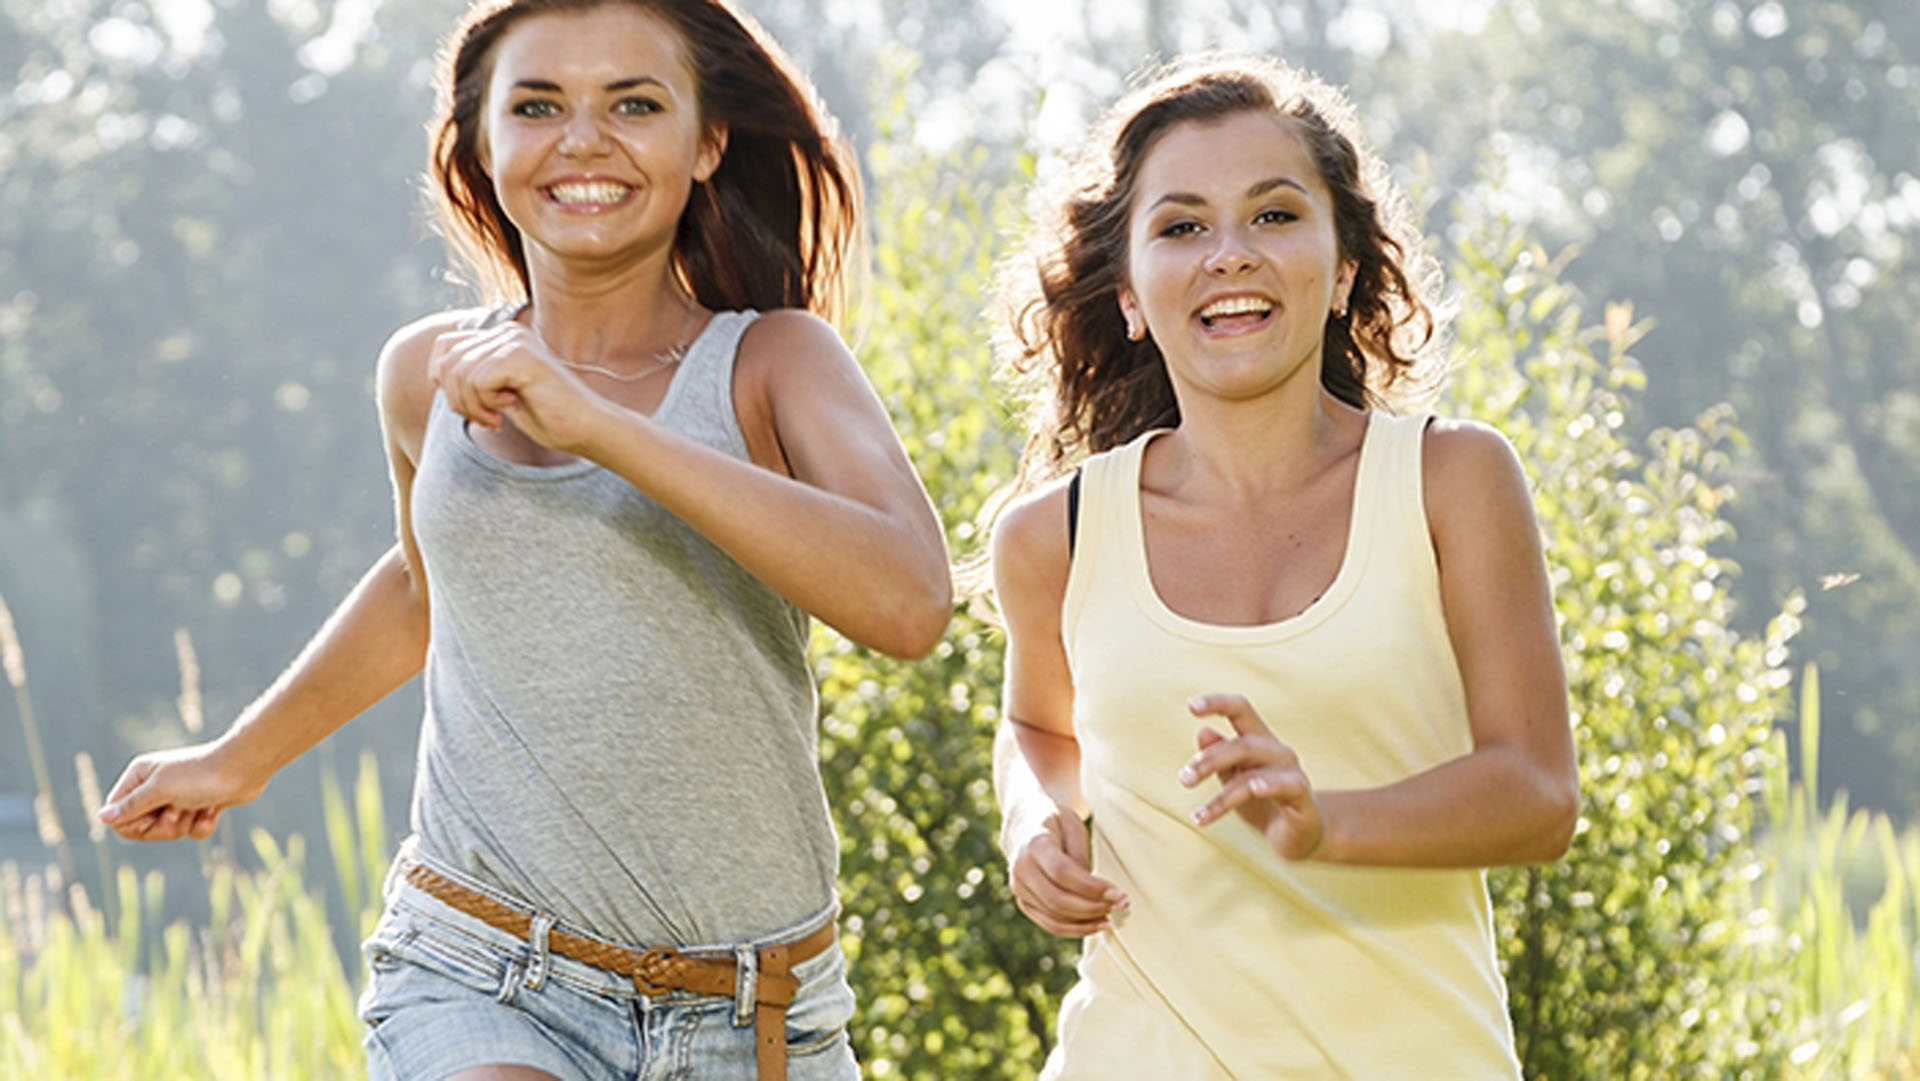 more-physical-activity-recommended-for-young-aussies